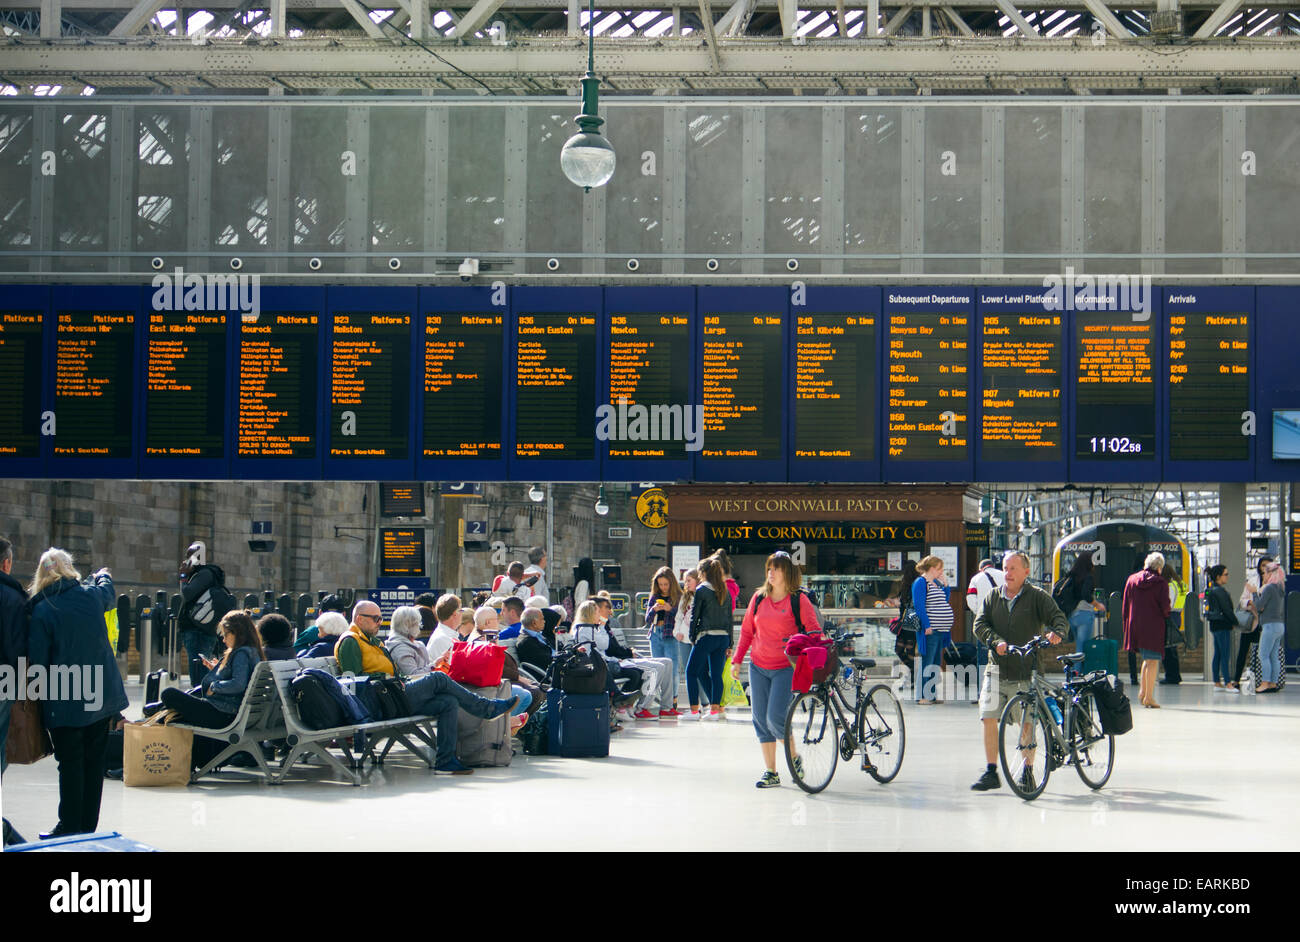 Grand Central Station Concourse Schedule in Glasgow  - Scotland - Stock Image